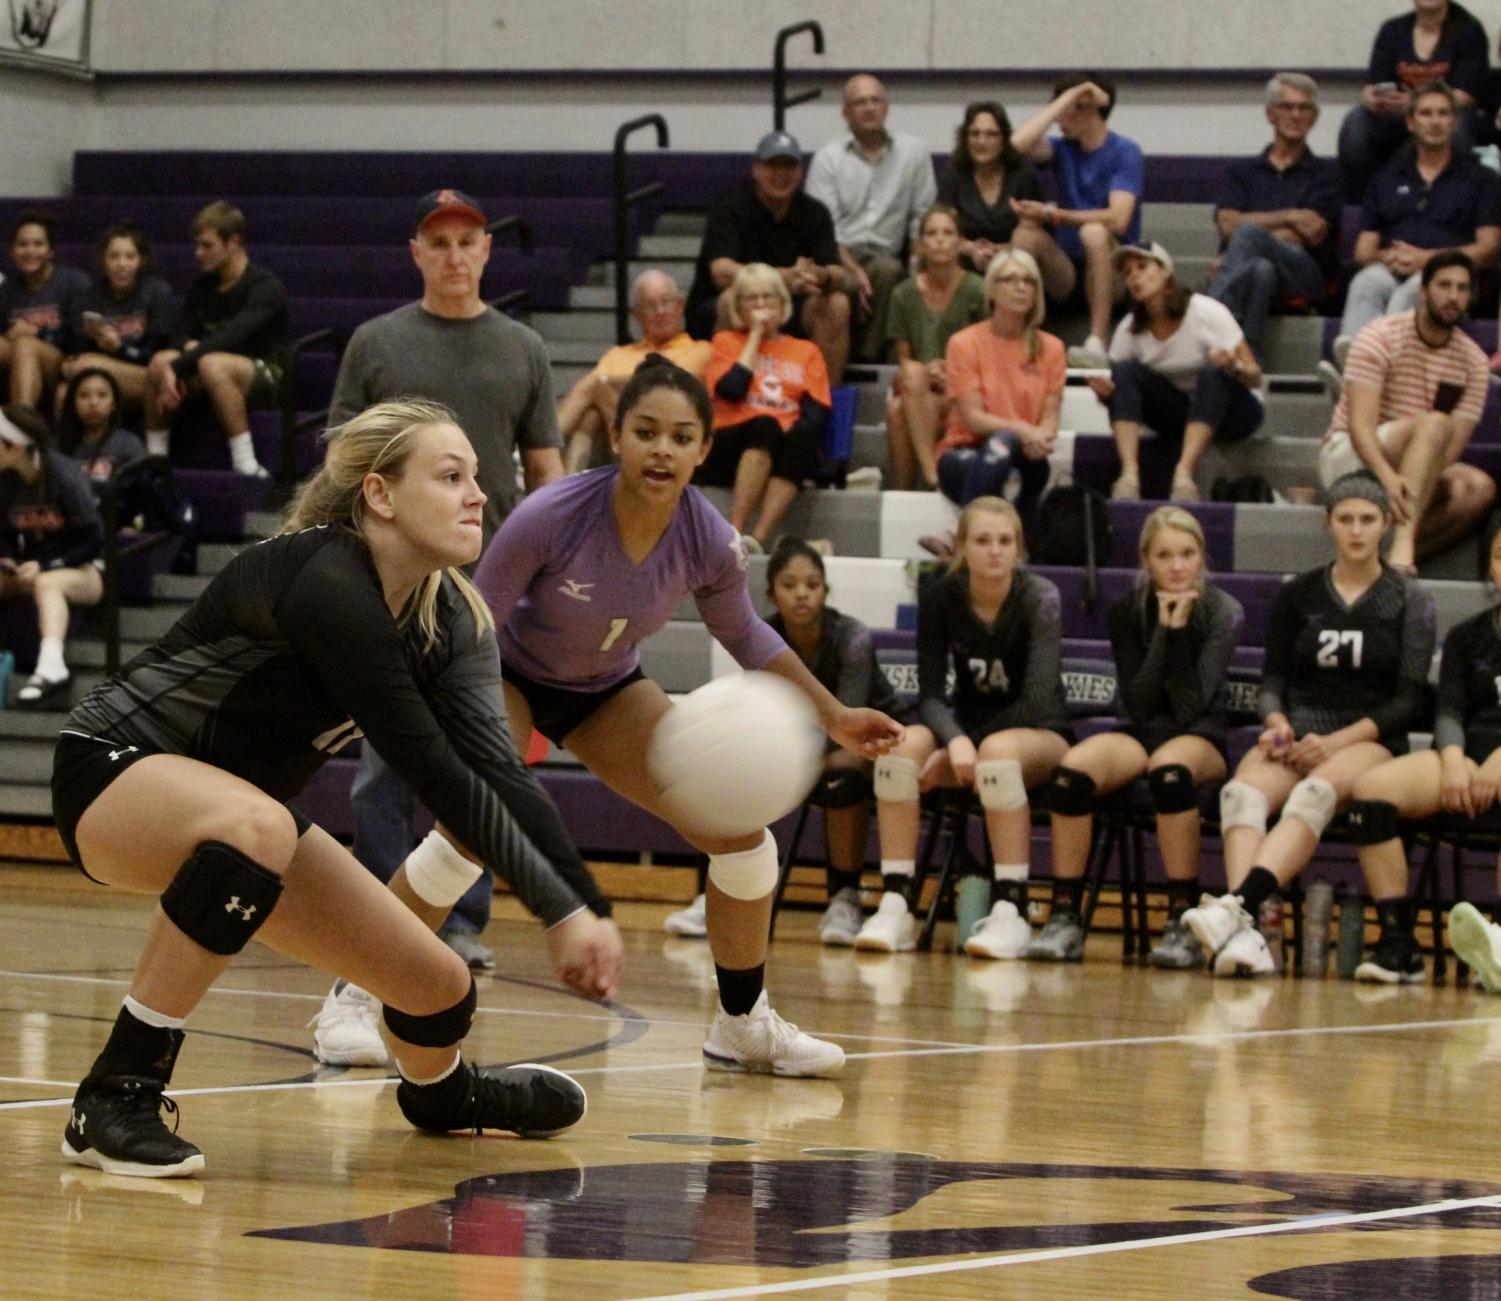 Junior Delany Granholm digs the ball in a volleyball game for Blue Valley Northwest. BVNW defeated BVN, 3 sets to 1.